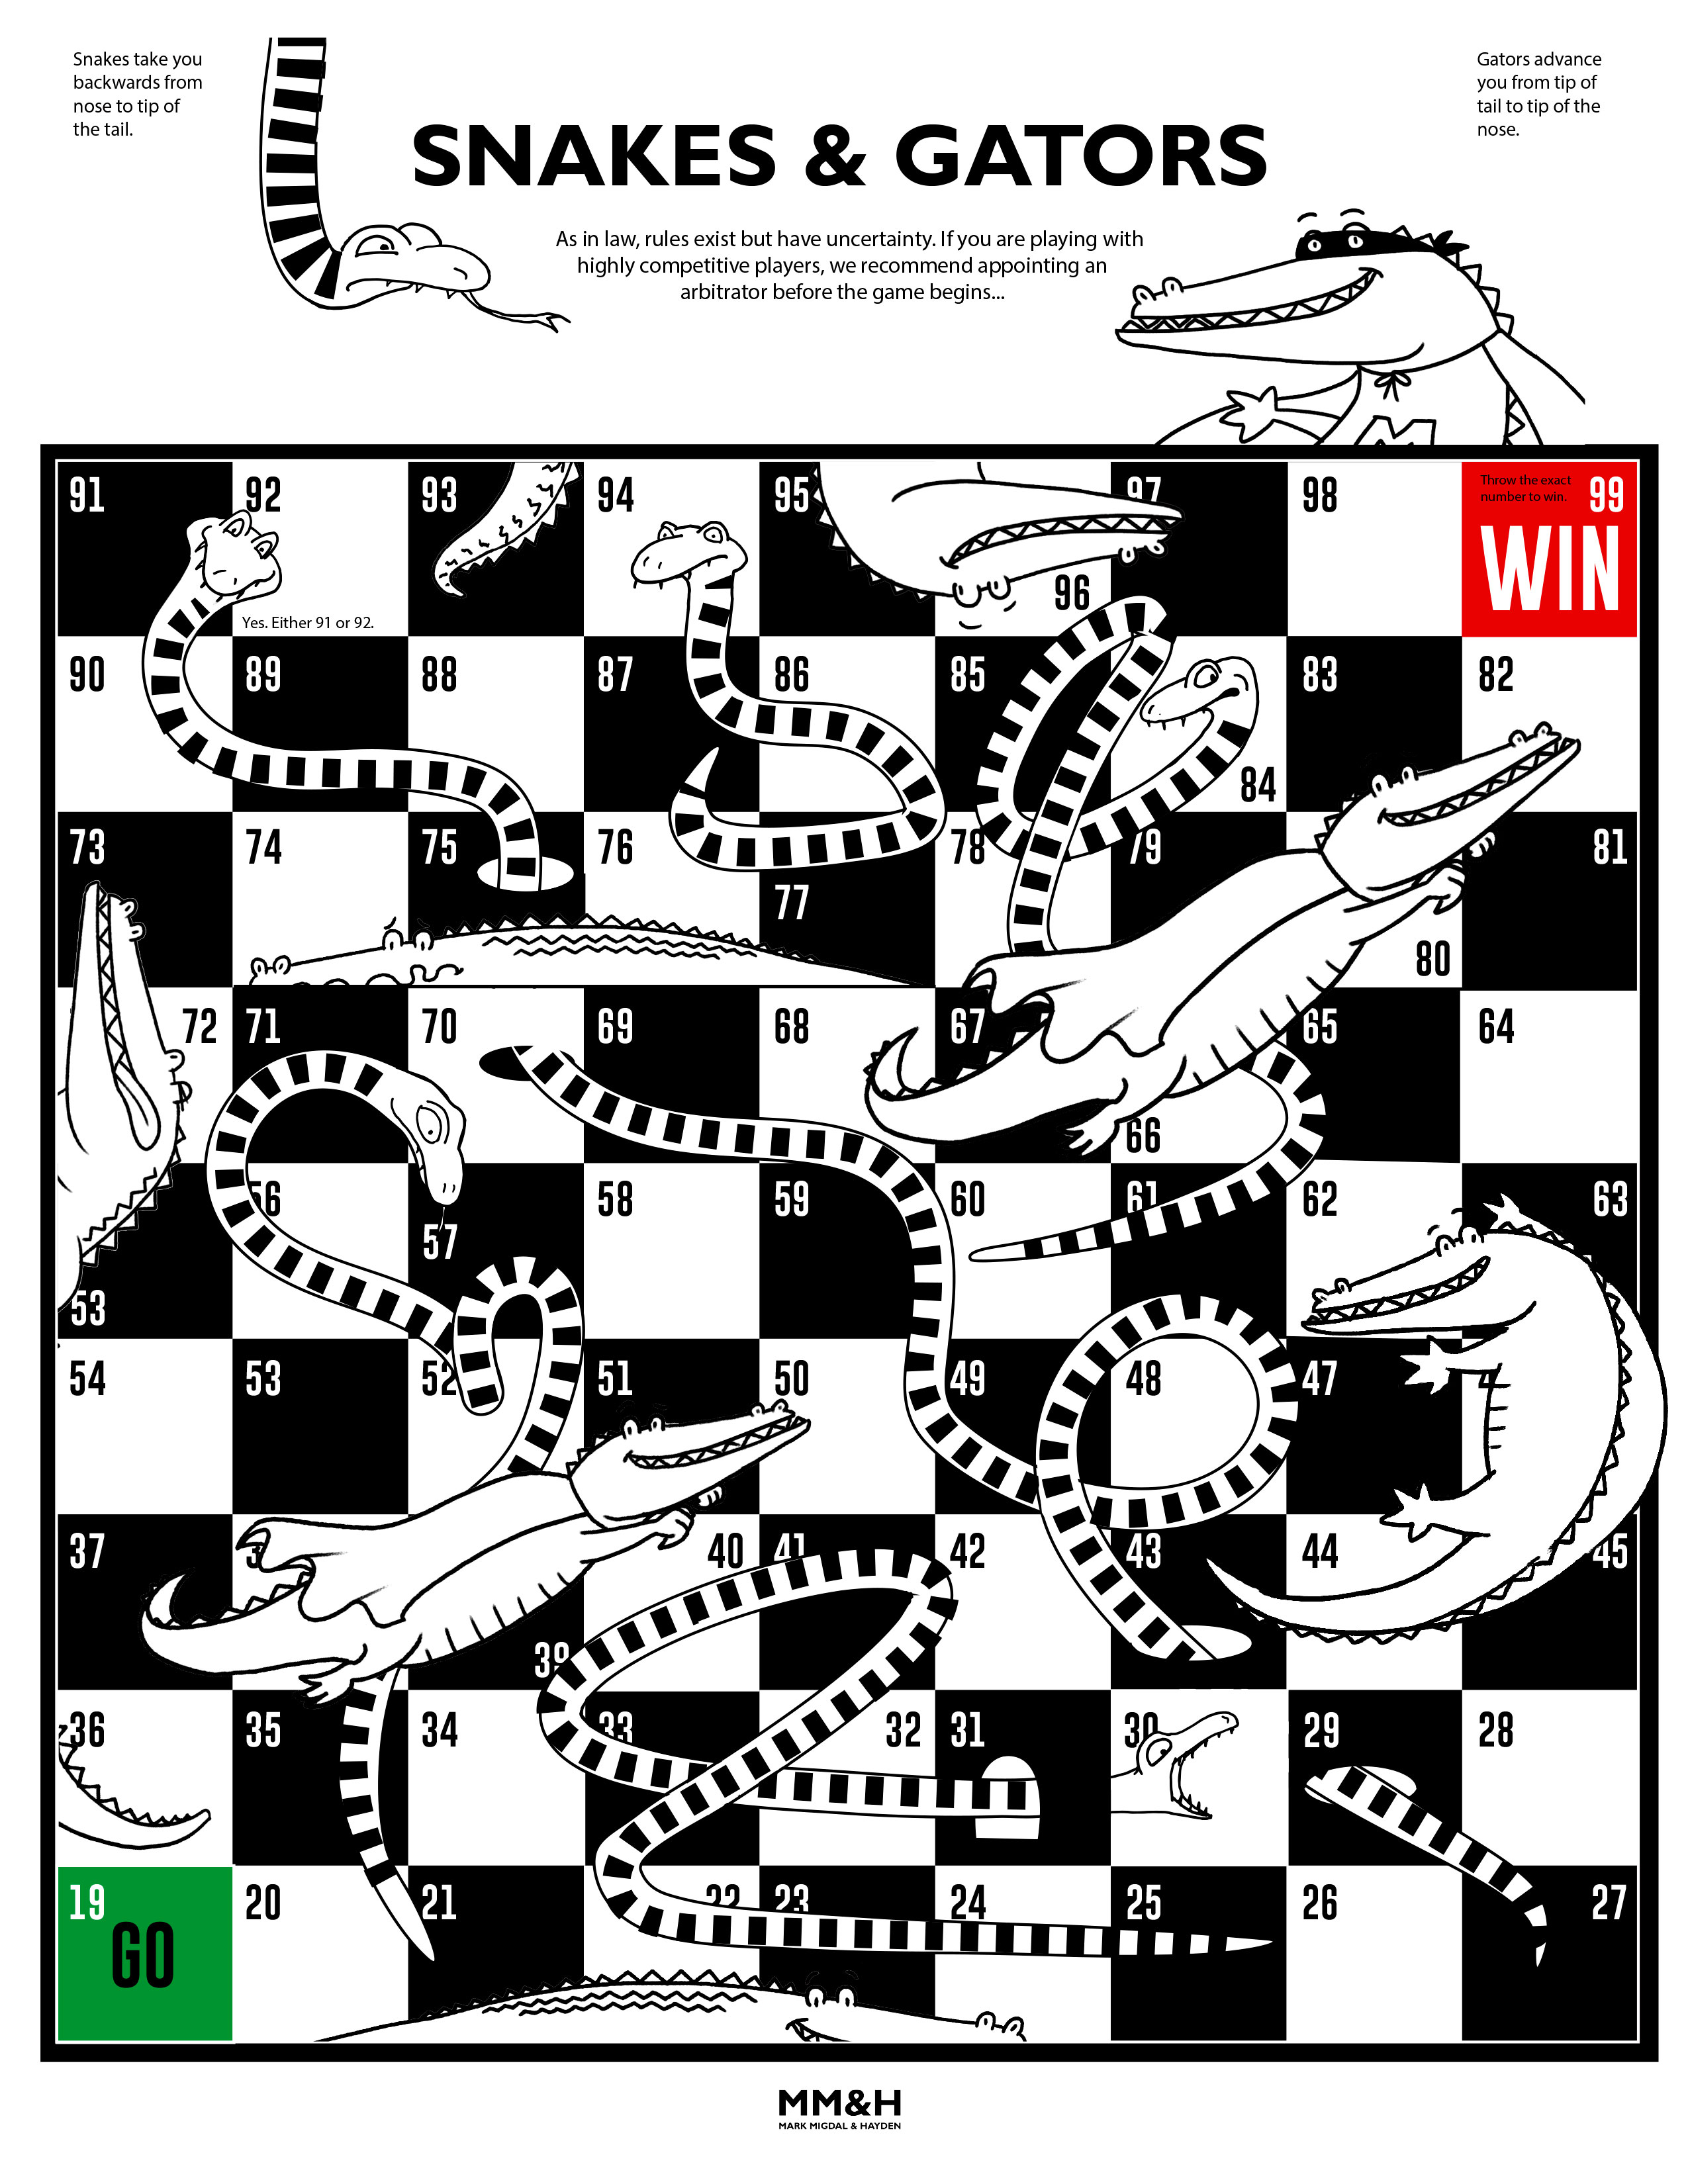 MM&H Snakes and Gators Board Game download